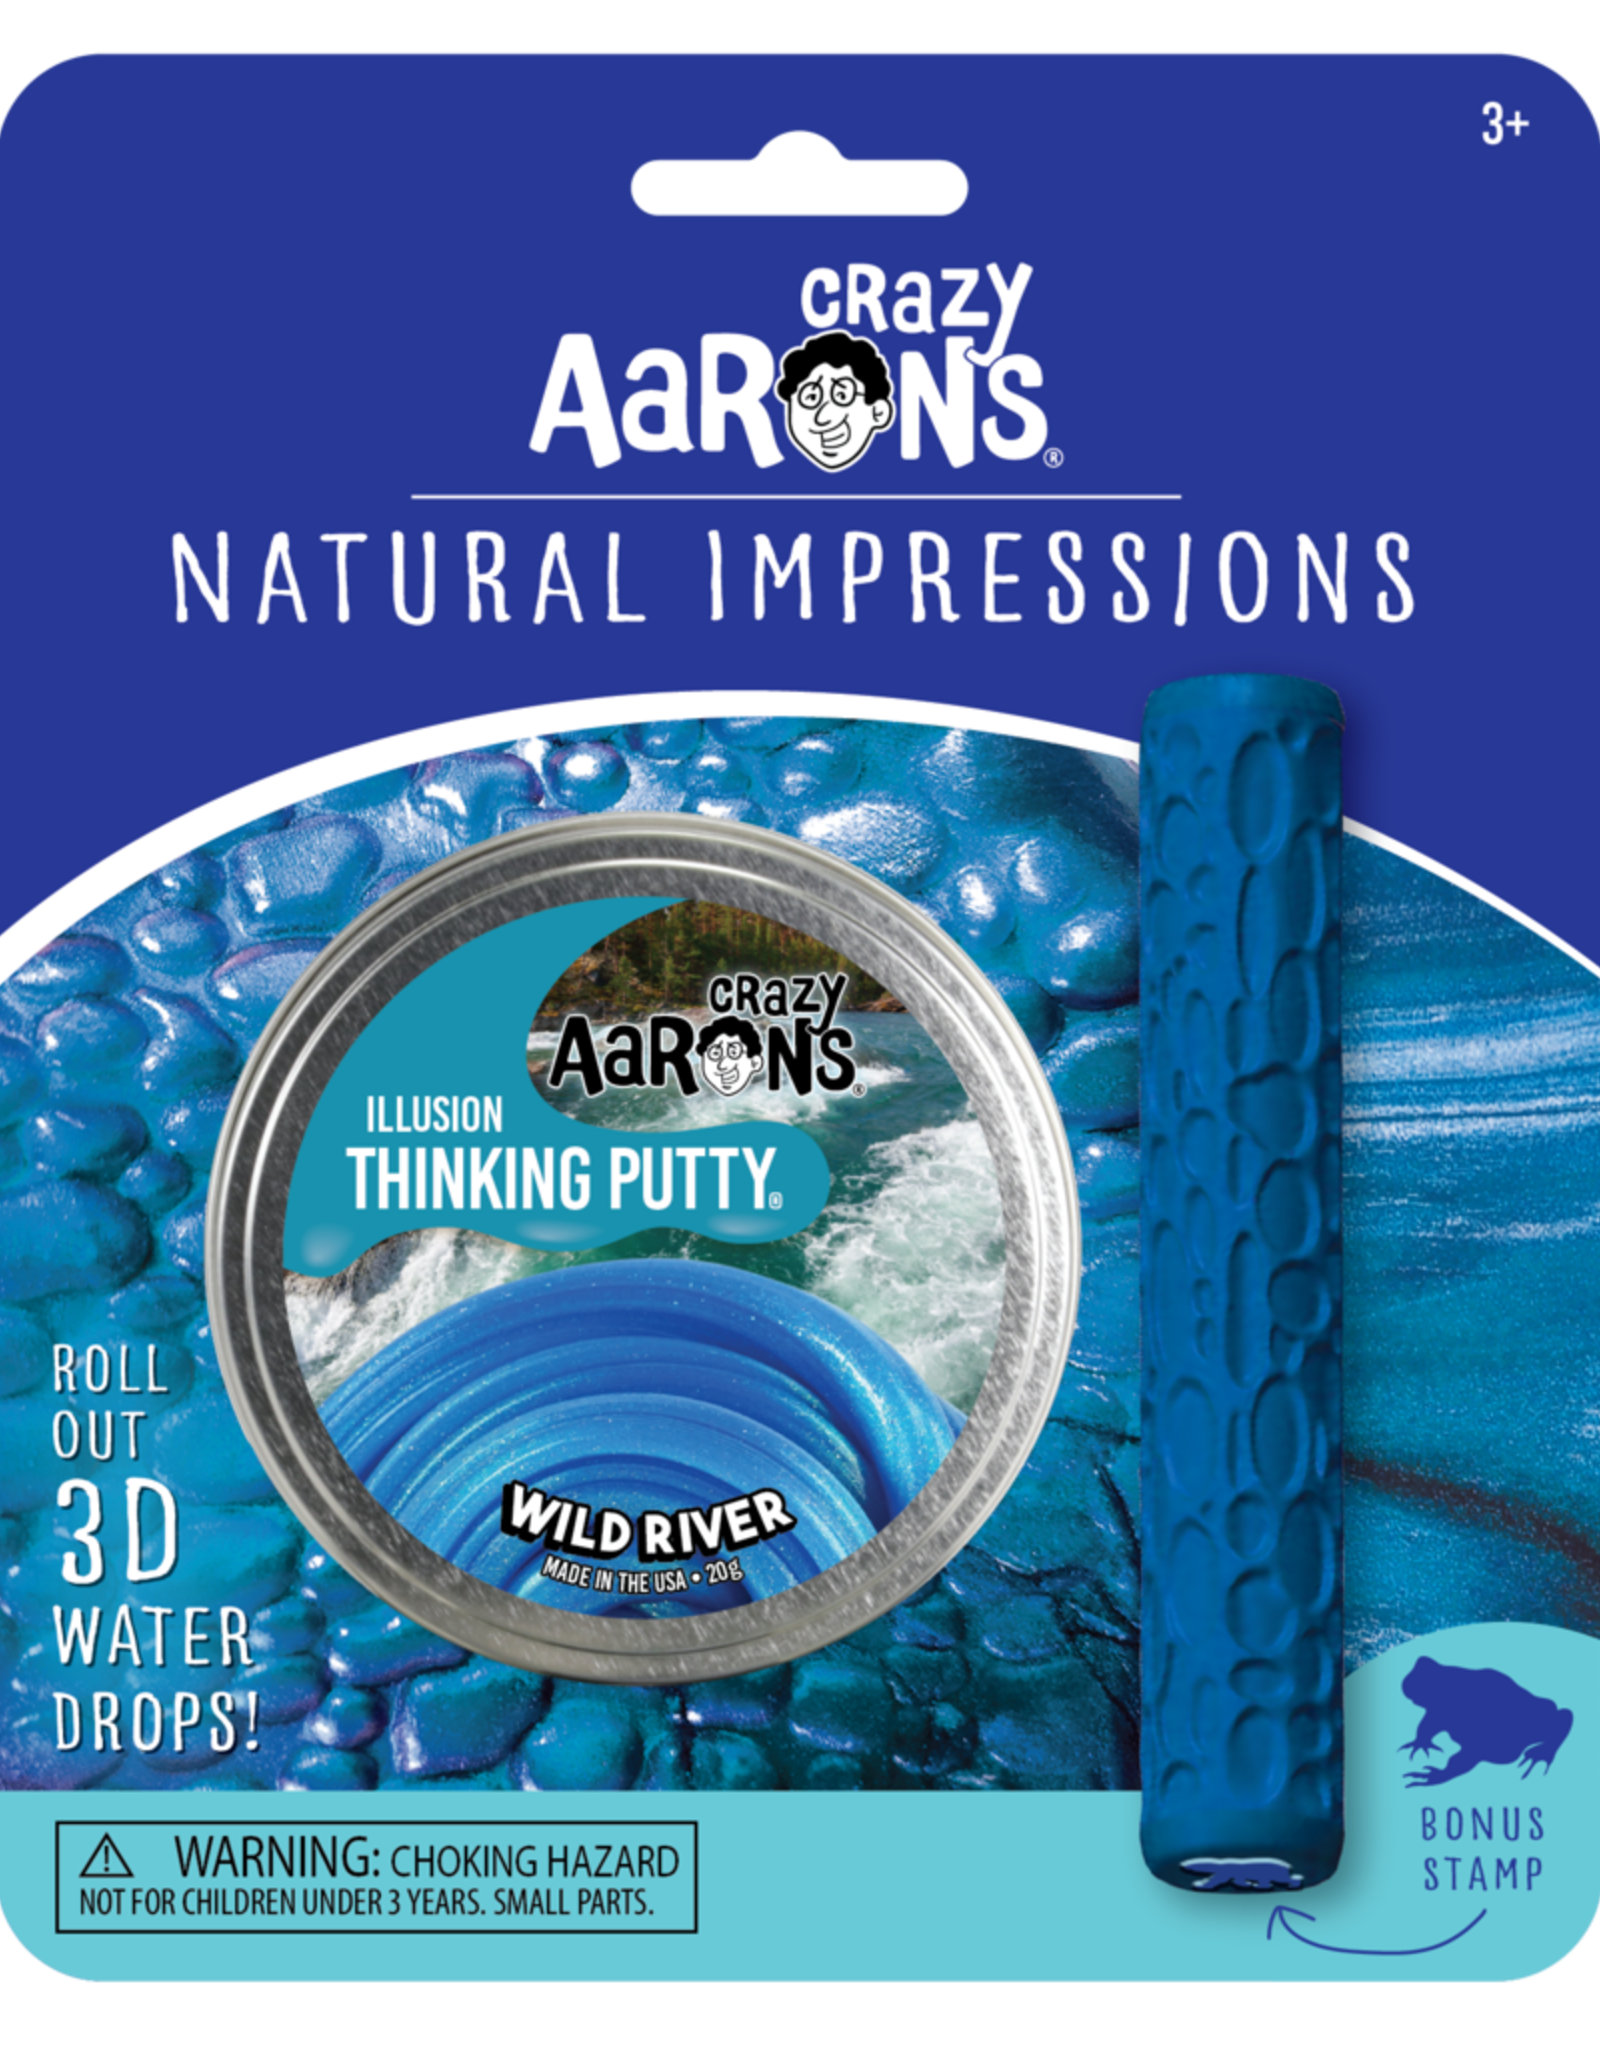 Crazy Aaron's Thinking Putty Crazy Aaron's Natural Impressions Tin & Stamp Sets